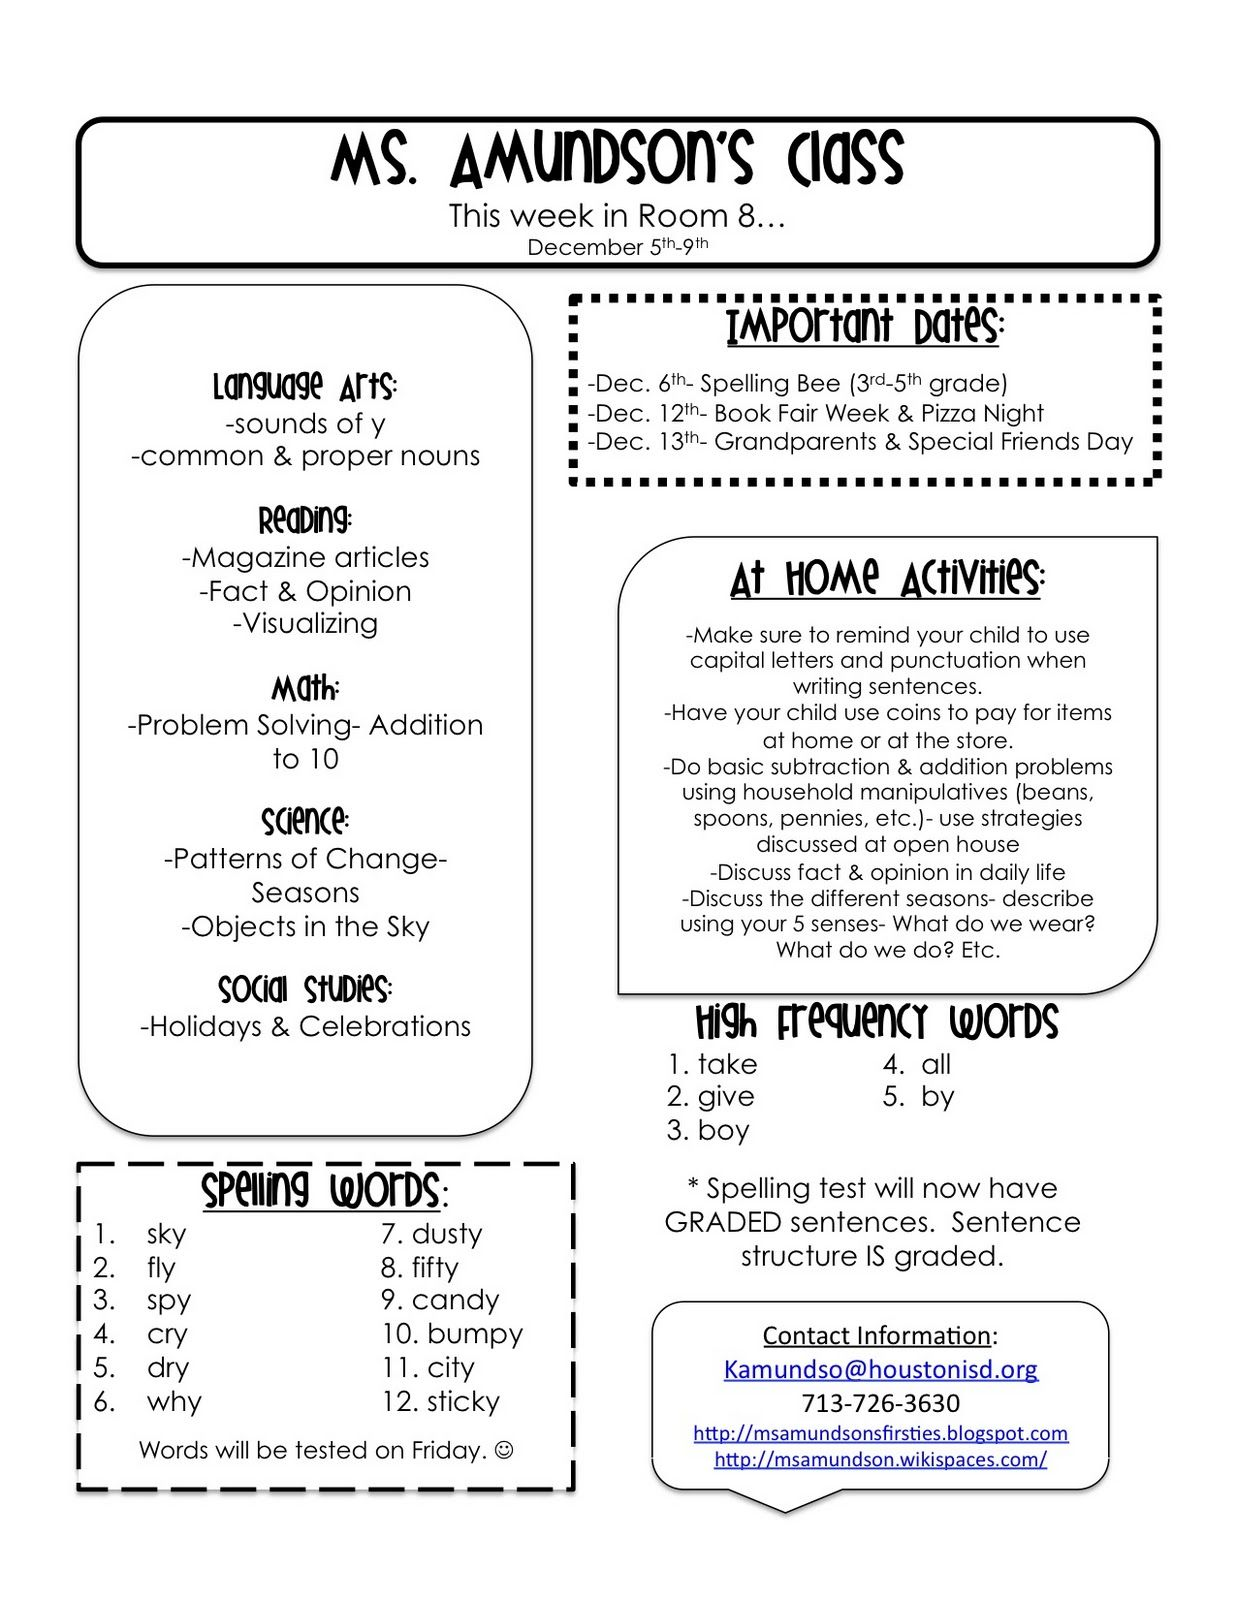 Weekly Newsletter Templates For Teachers